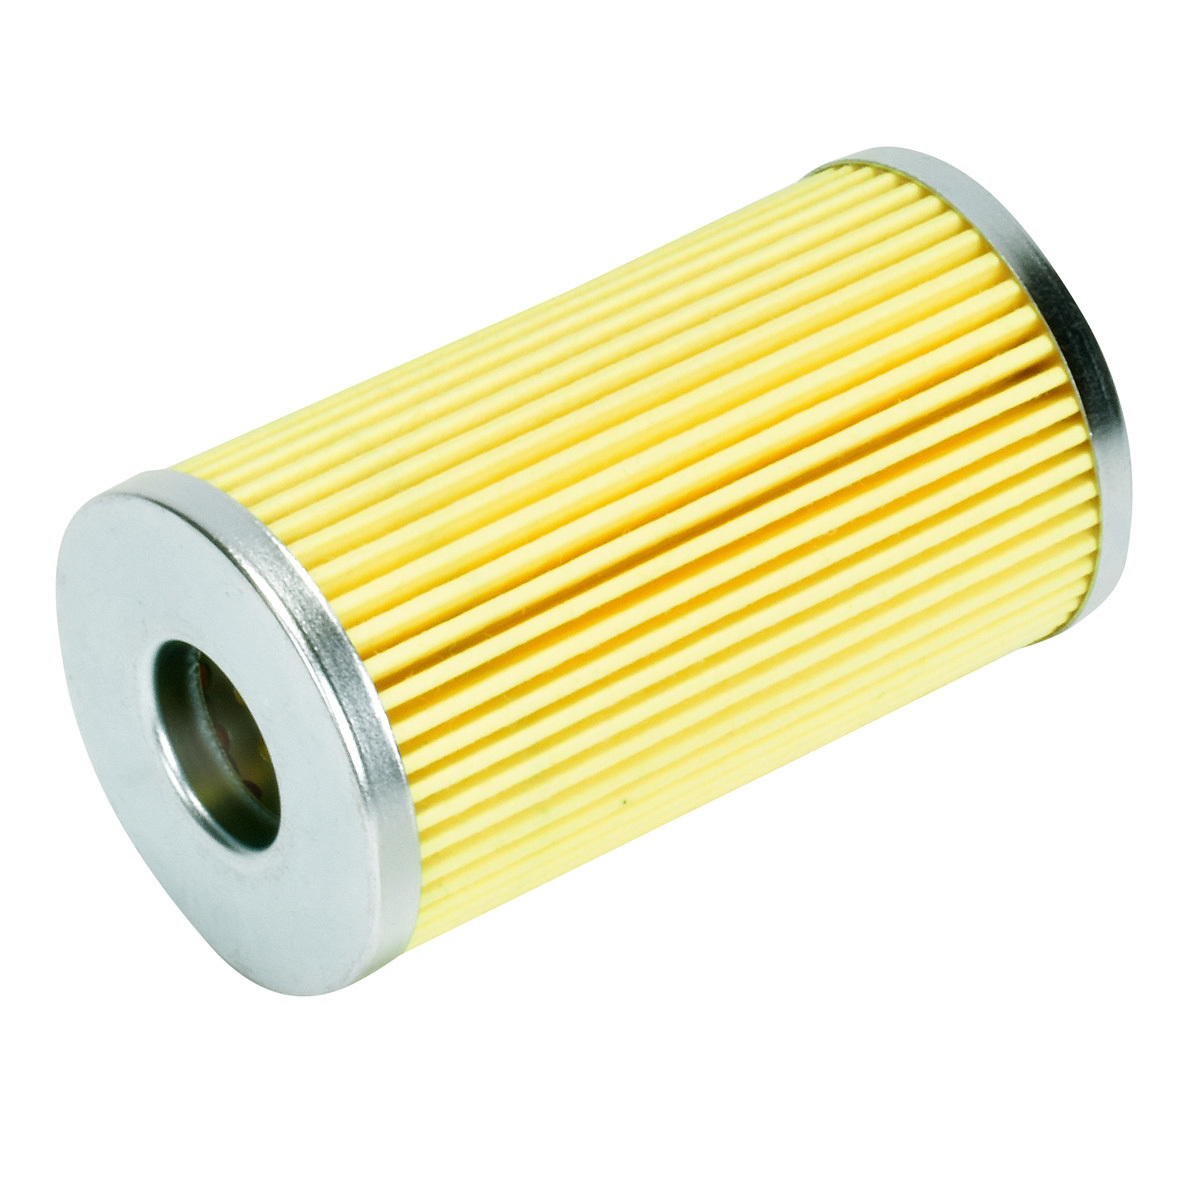 Fuel Filter for 4000 and 4010 Series Compact Utility Tractor on john deere diesel filter, engine fuel filter, yanmar tractor fuel filter, john deere fuel filter installation, antique tractor fuel filter, john deere dozer fuel filter, john deere skid steer fuel filter, john deere irrigation filter, john deere oil filter parts, hinomoto tractor fuel filter, john deere 4410 fuel filter, john deere fuel filter housing, garden tractor fuel filter, mustang tractor fuel filter, john deere 750 fuel filter, john deere 430 fuel filter, john deere fuel filter replacement, john deere generator fuel filter, case 580 backhoe fuel filter, john deere 212 fuel filter,